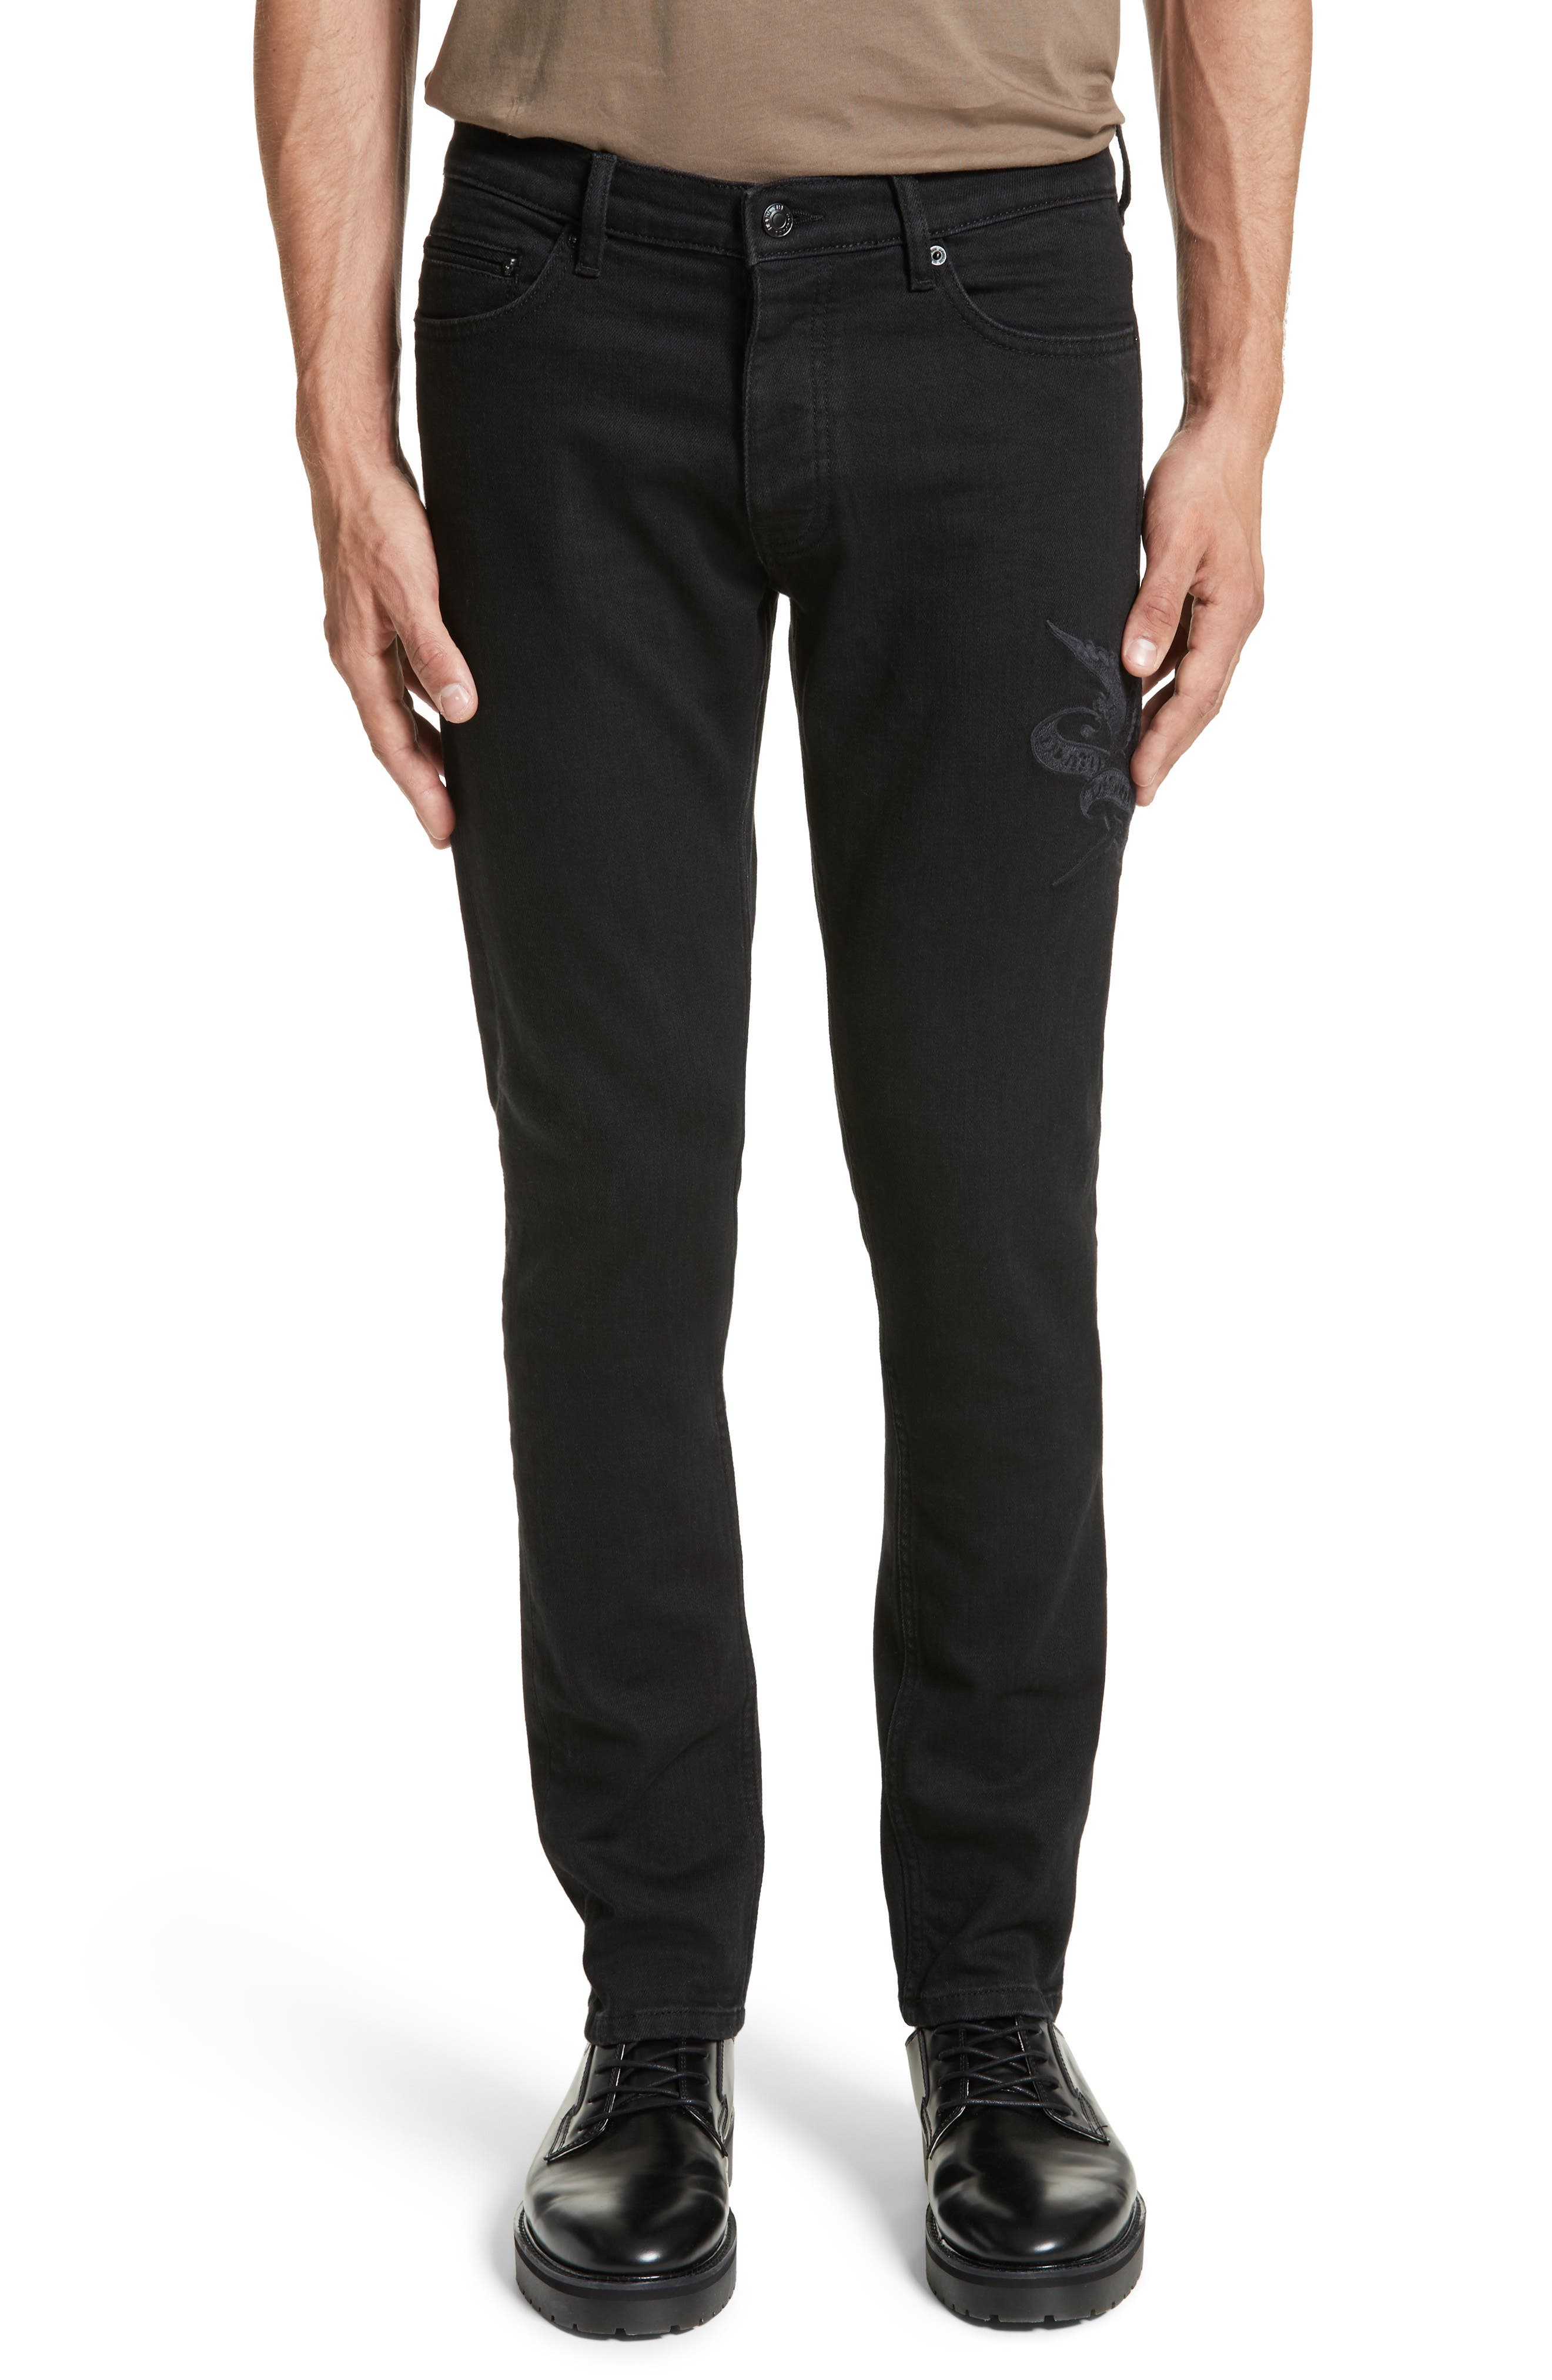 Main Image - The Kooples Embroidered Slim Fit Jeans